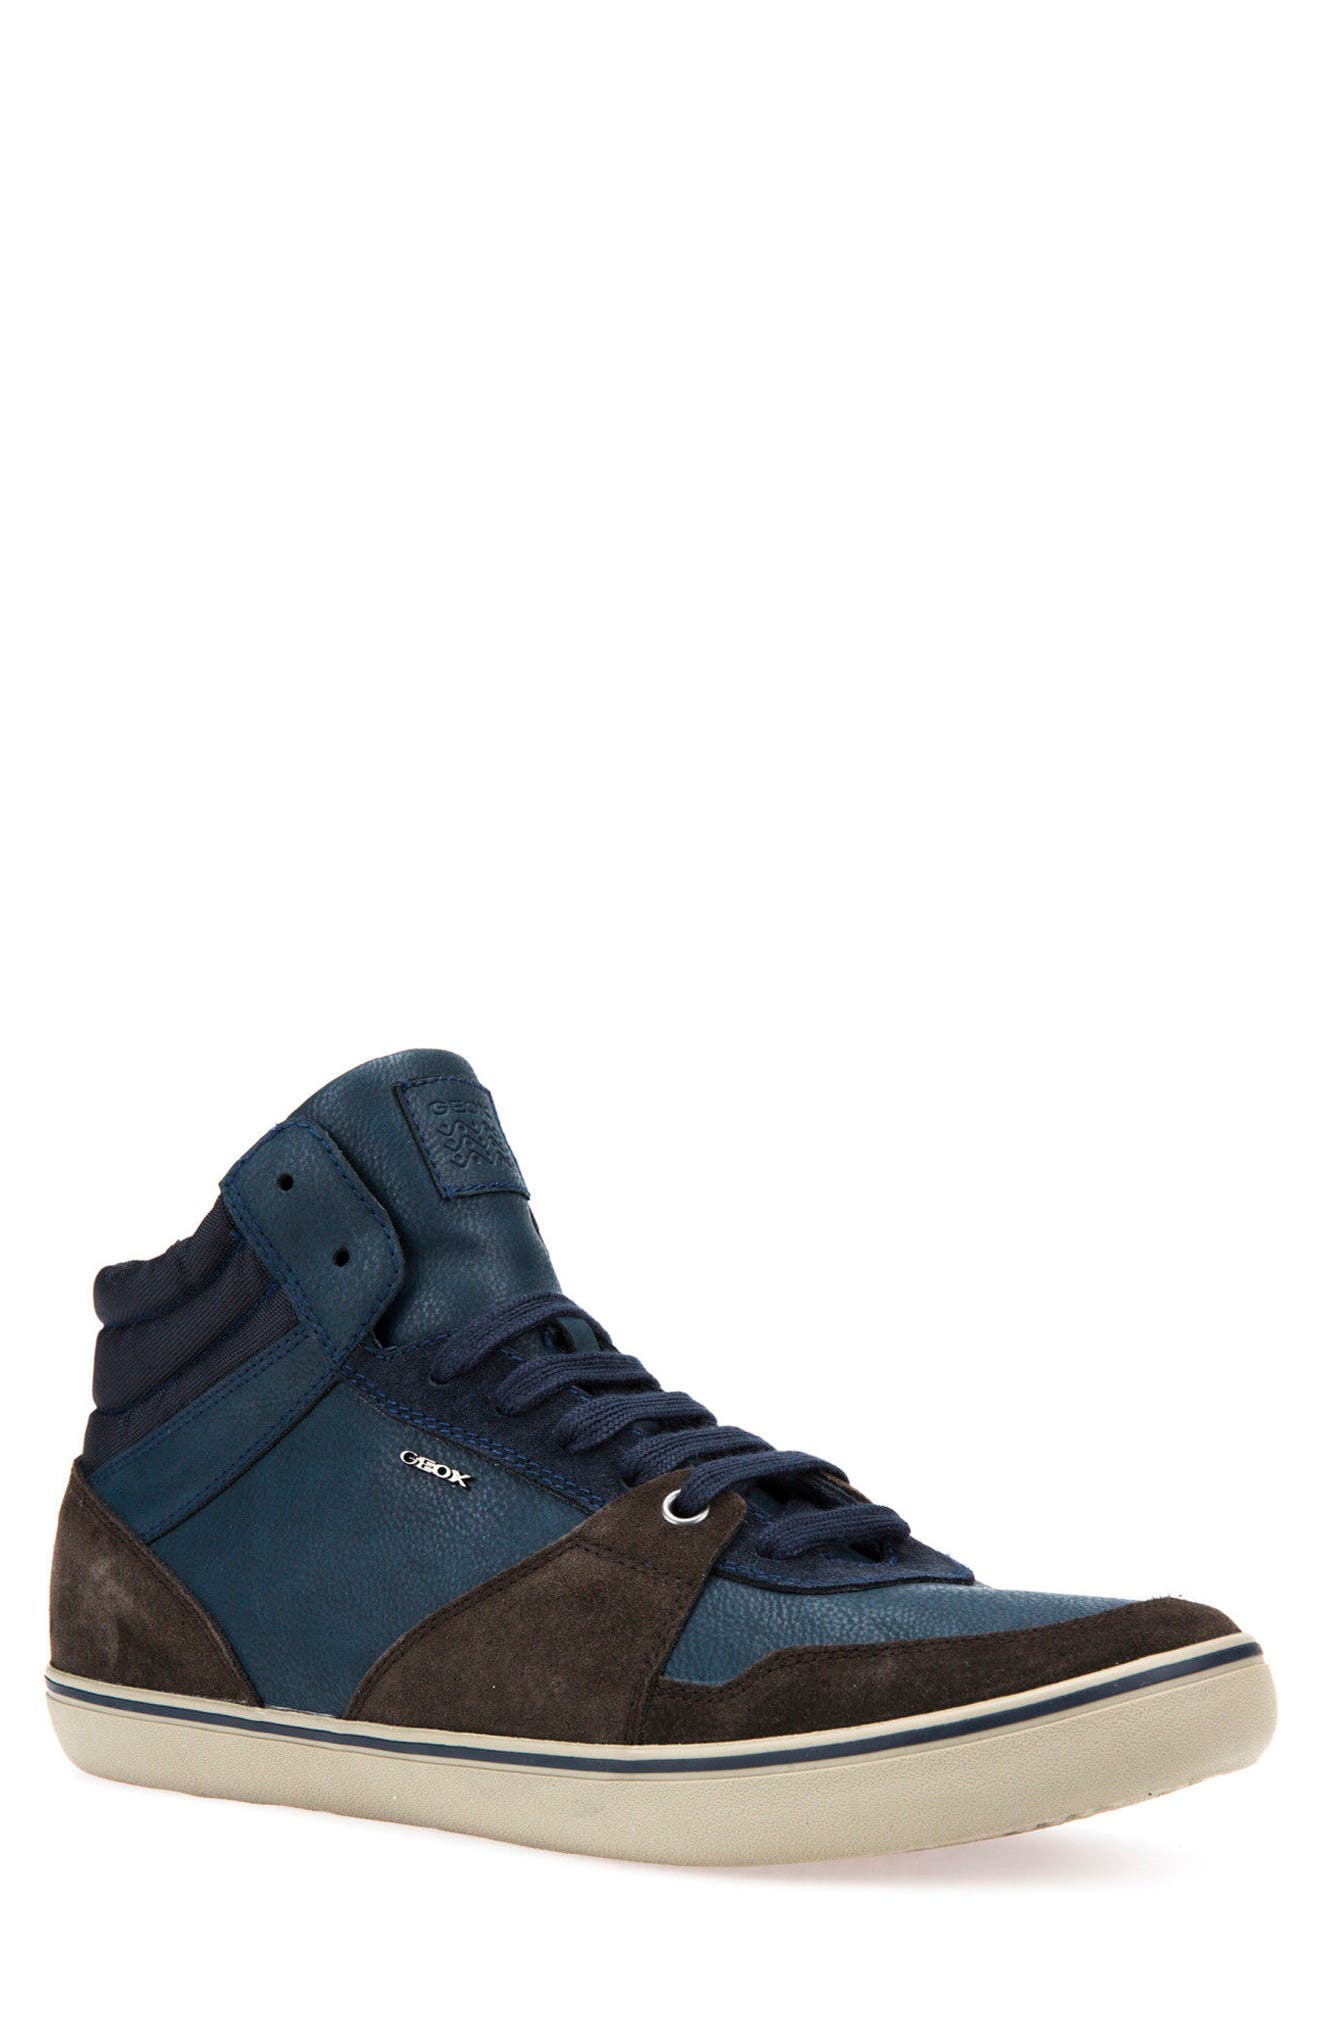 Box 29 High Top Sneaker,                             Main thumbnail 1, color,                             200